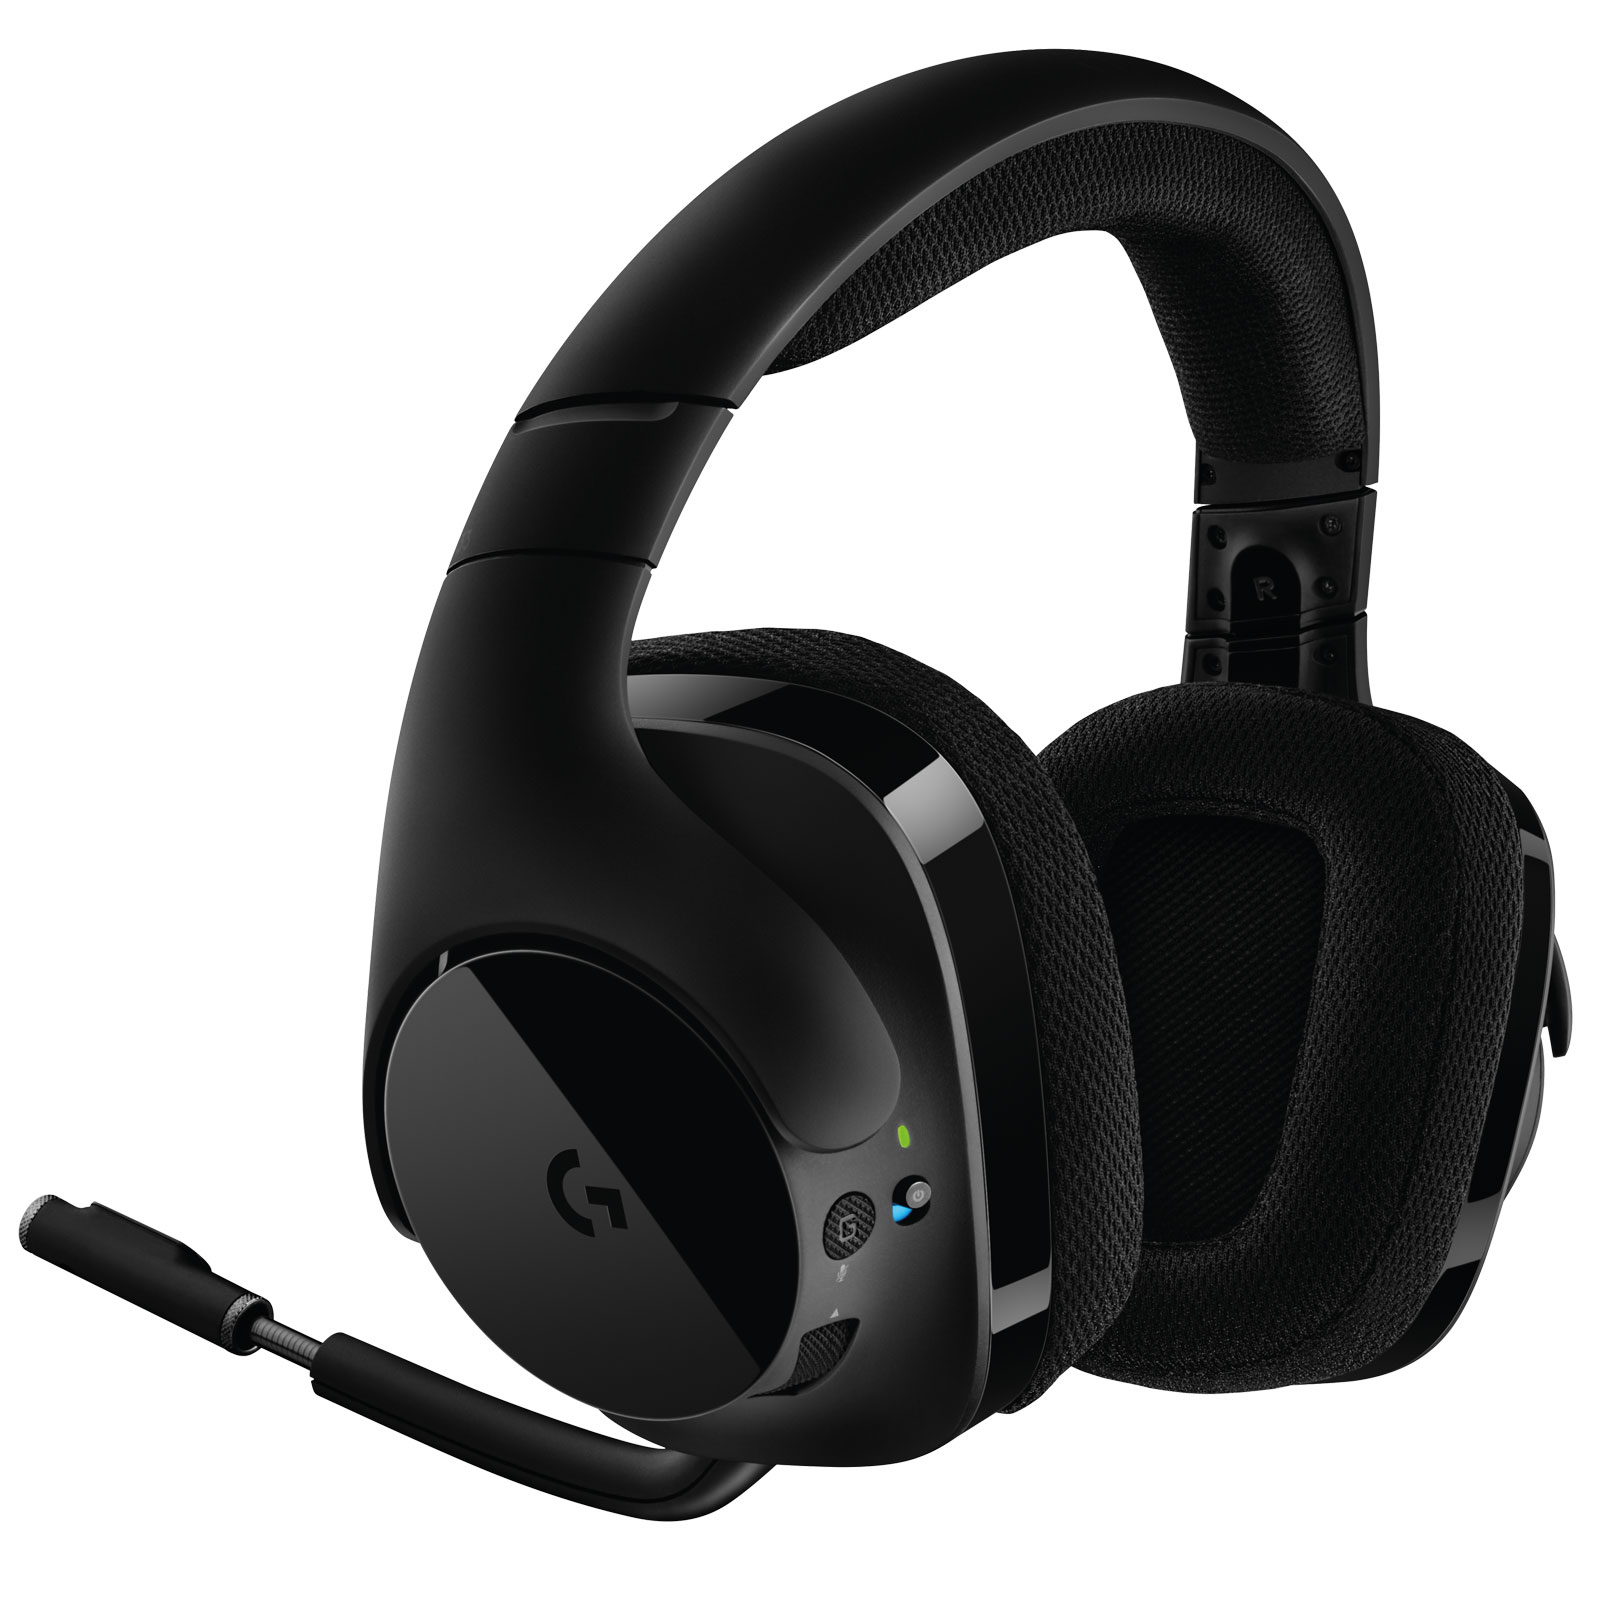 Logitech G533 Prodigy Wireless Gaming Headset 7.1 Surround - Micro-casque - 1